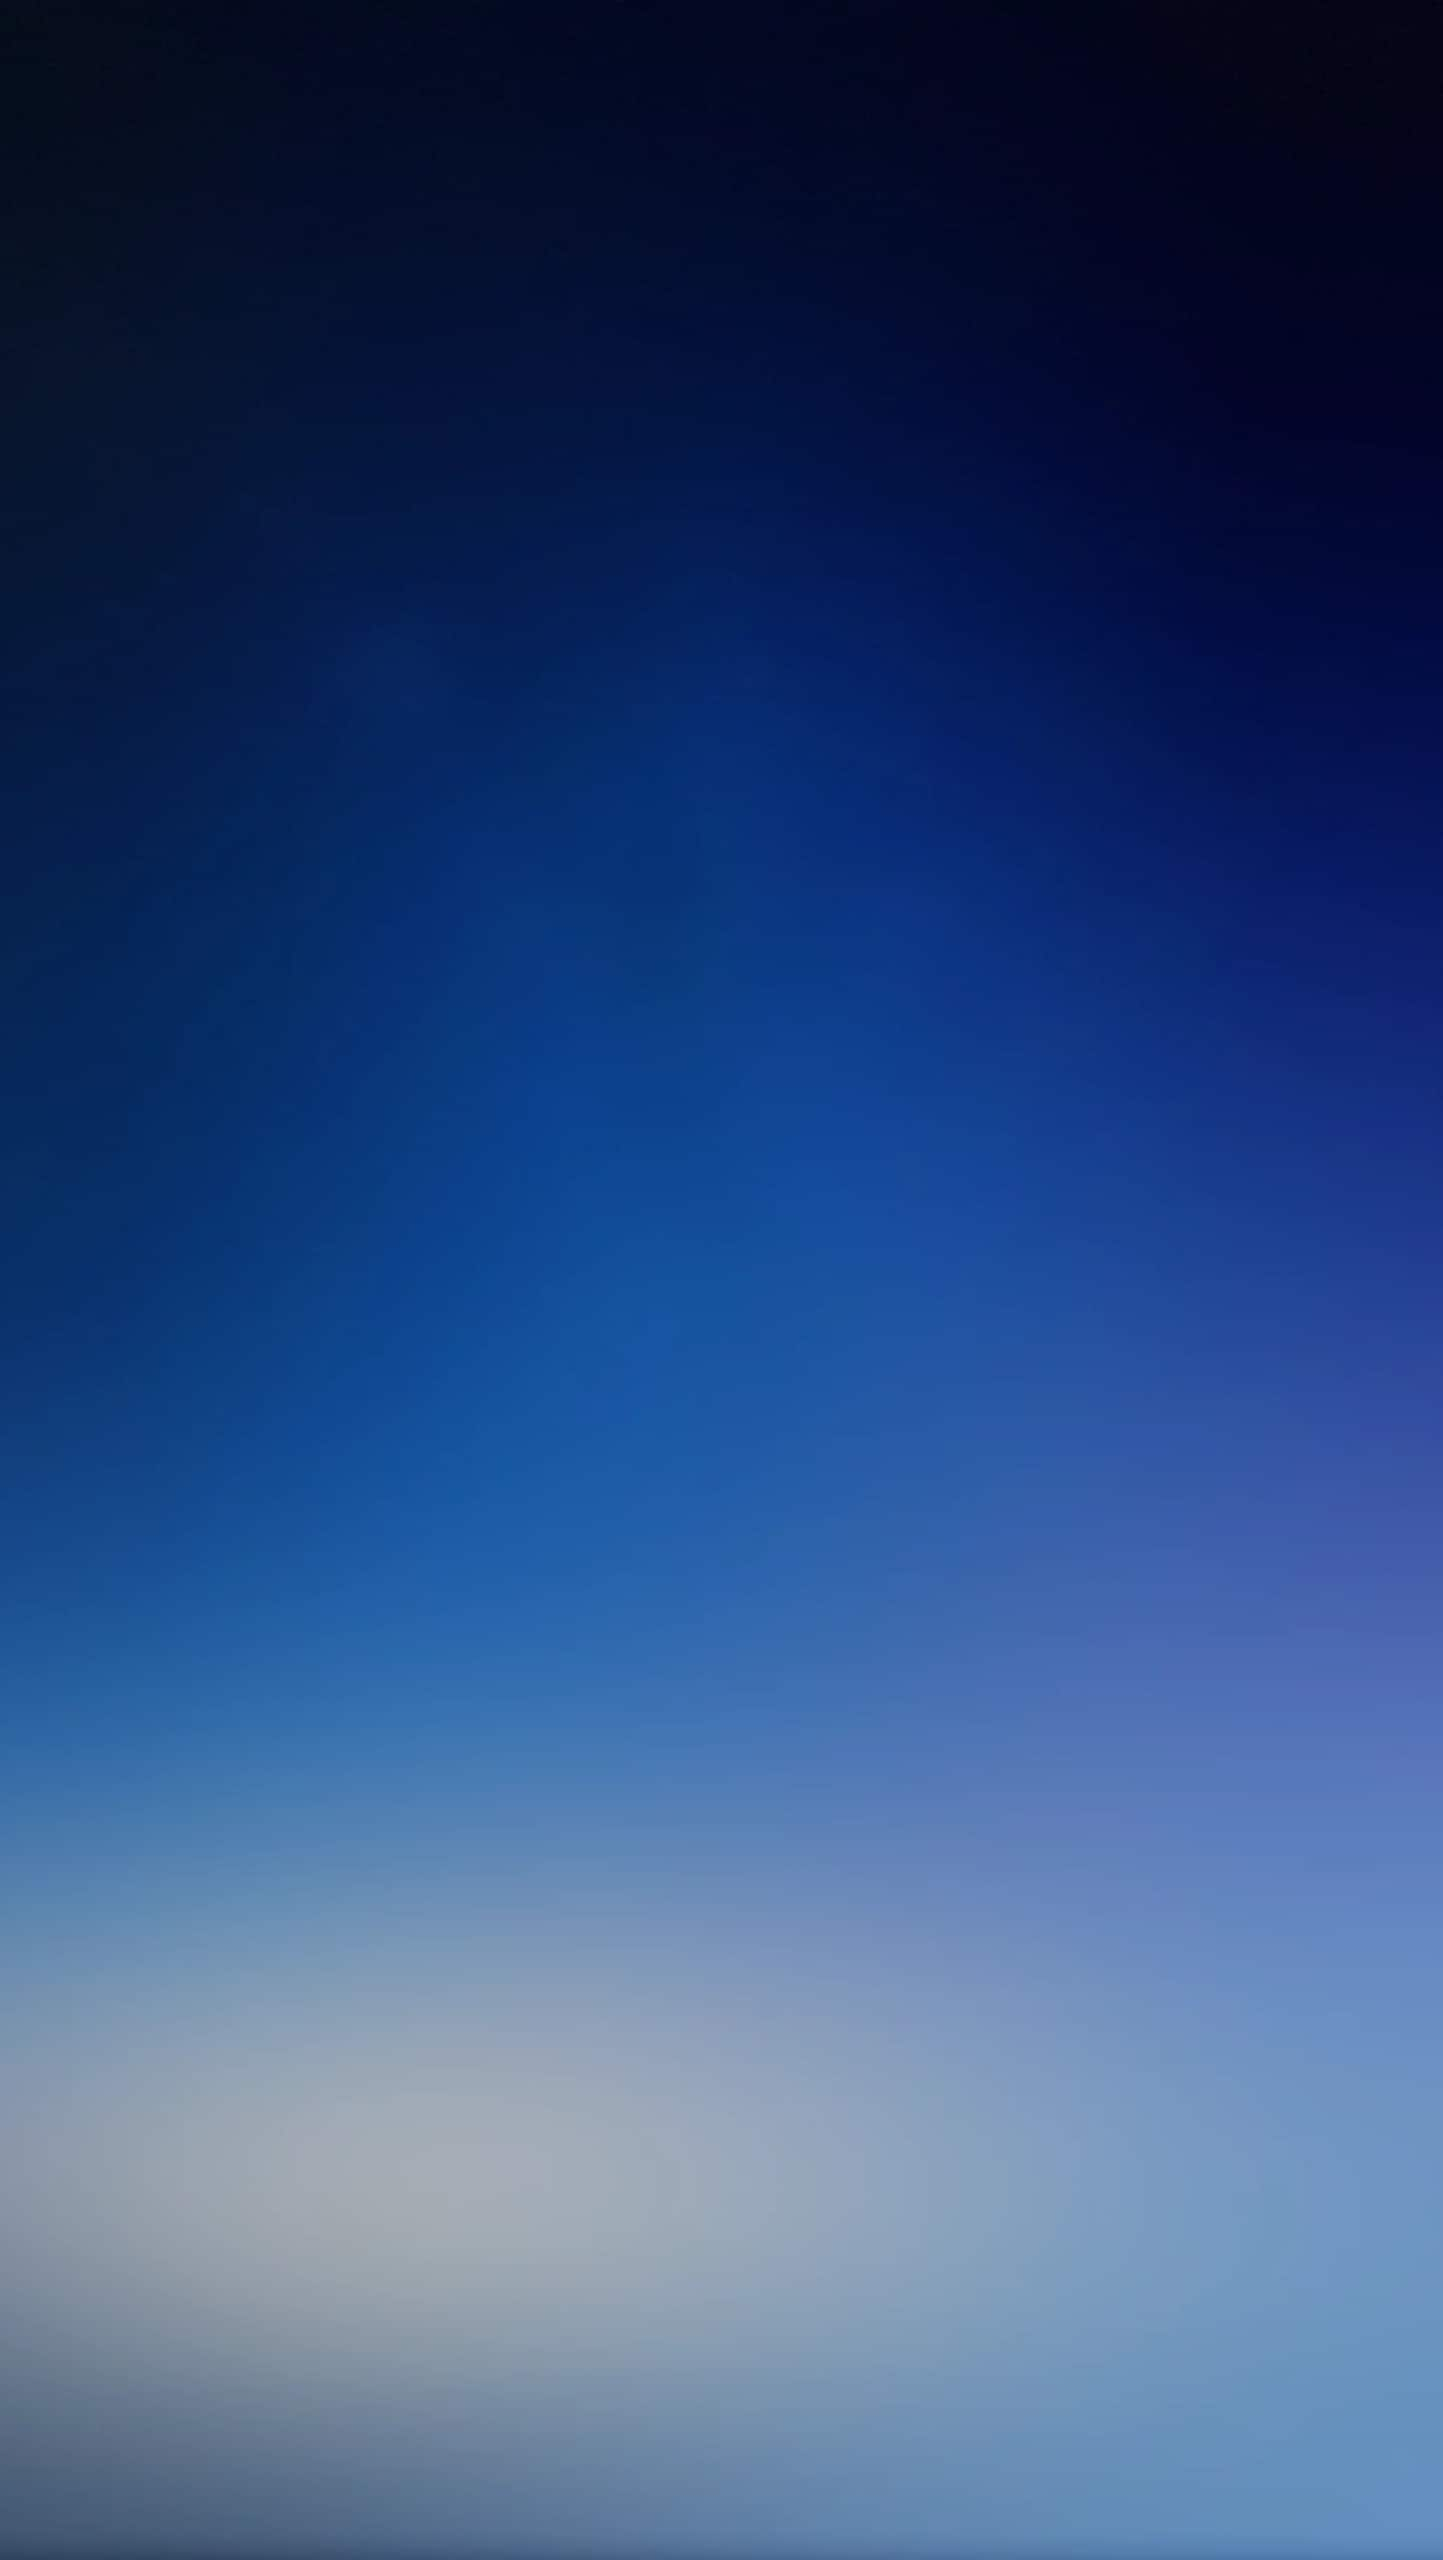 1443x2560px Samsung Galaxy Note 8 Wallpapers Wallpapersafari